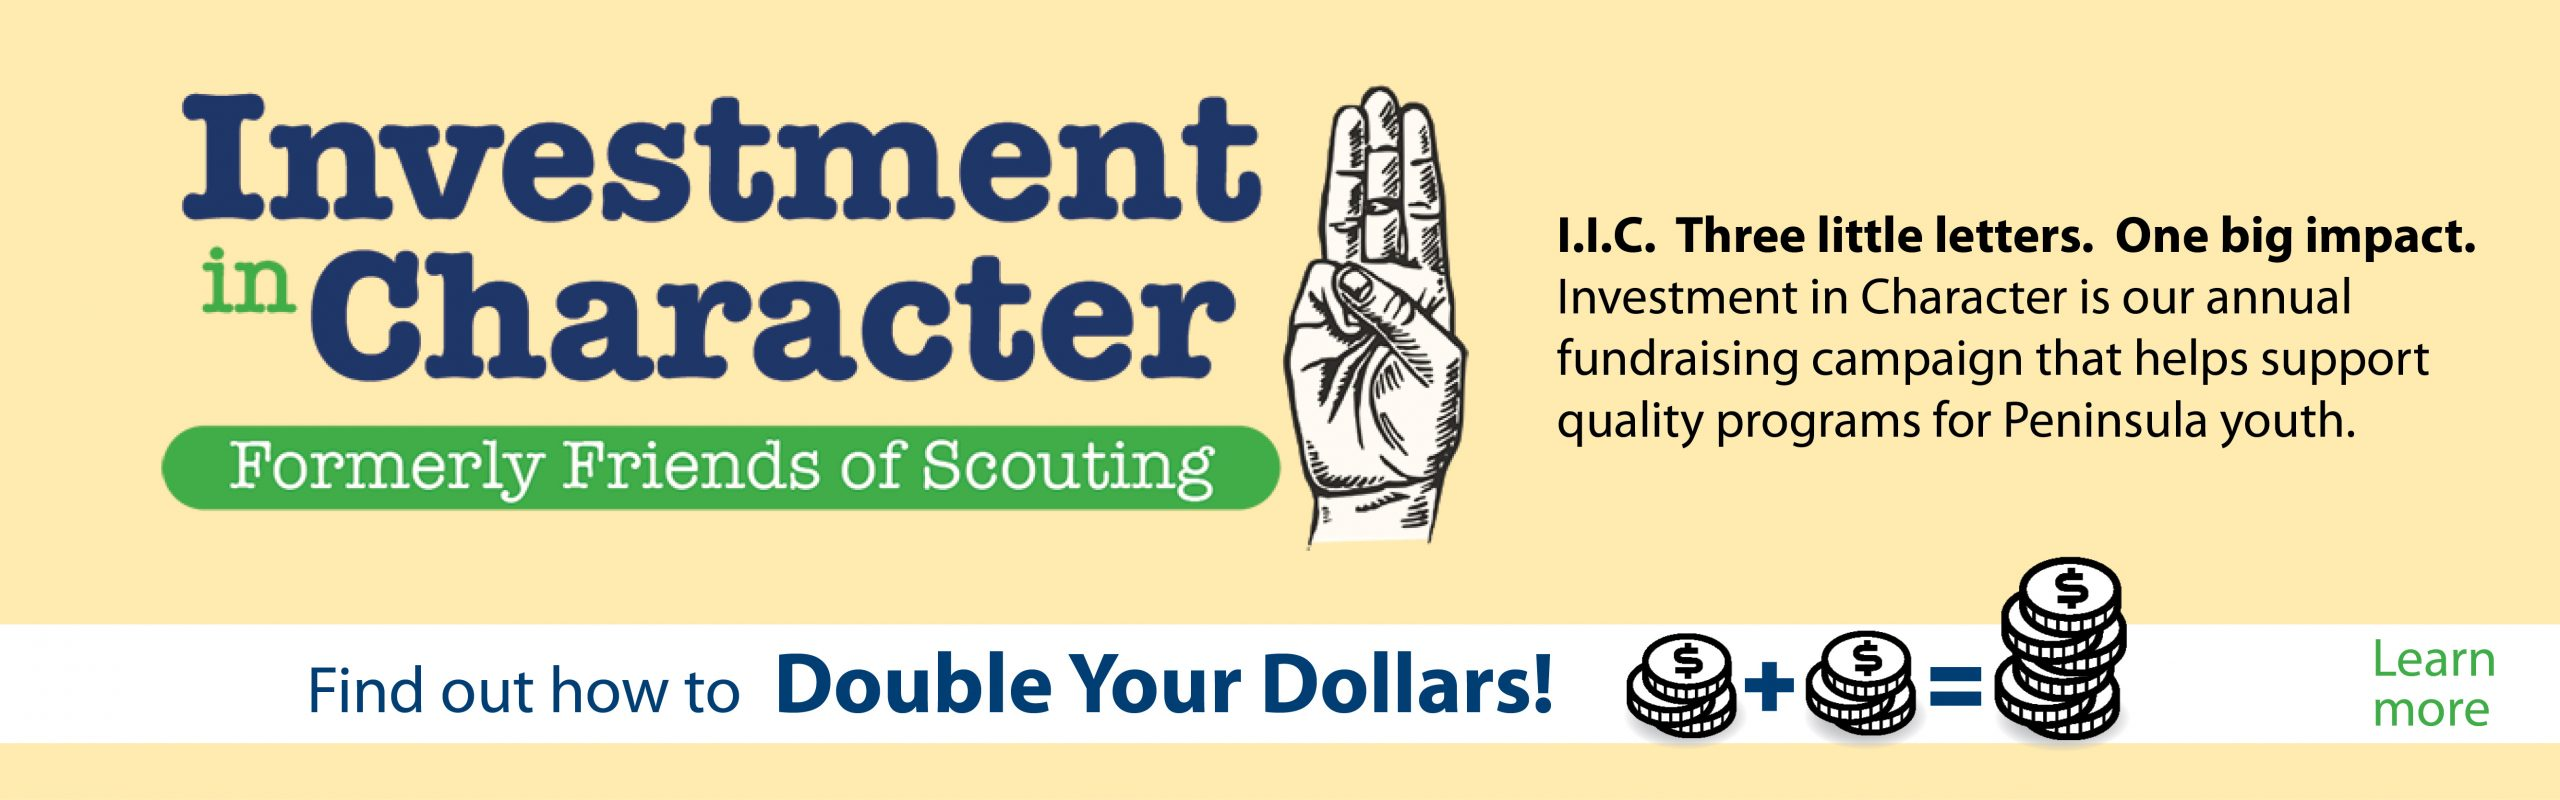 Investment in Character banner, Find Out How to Double Your Dollars!